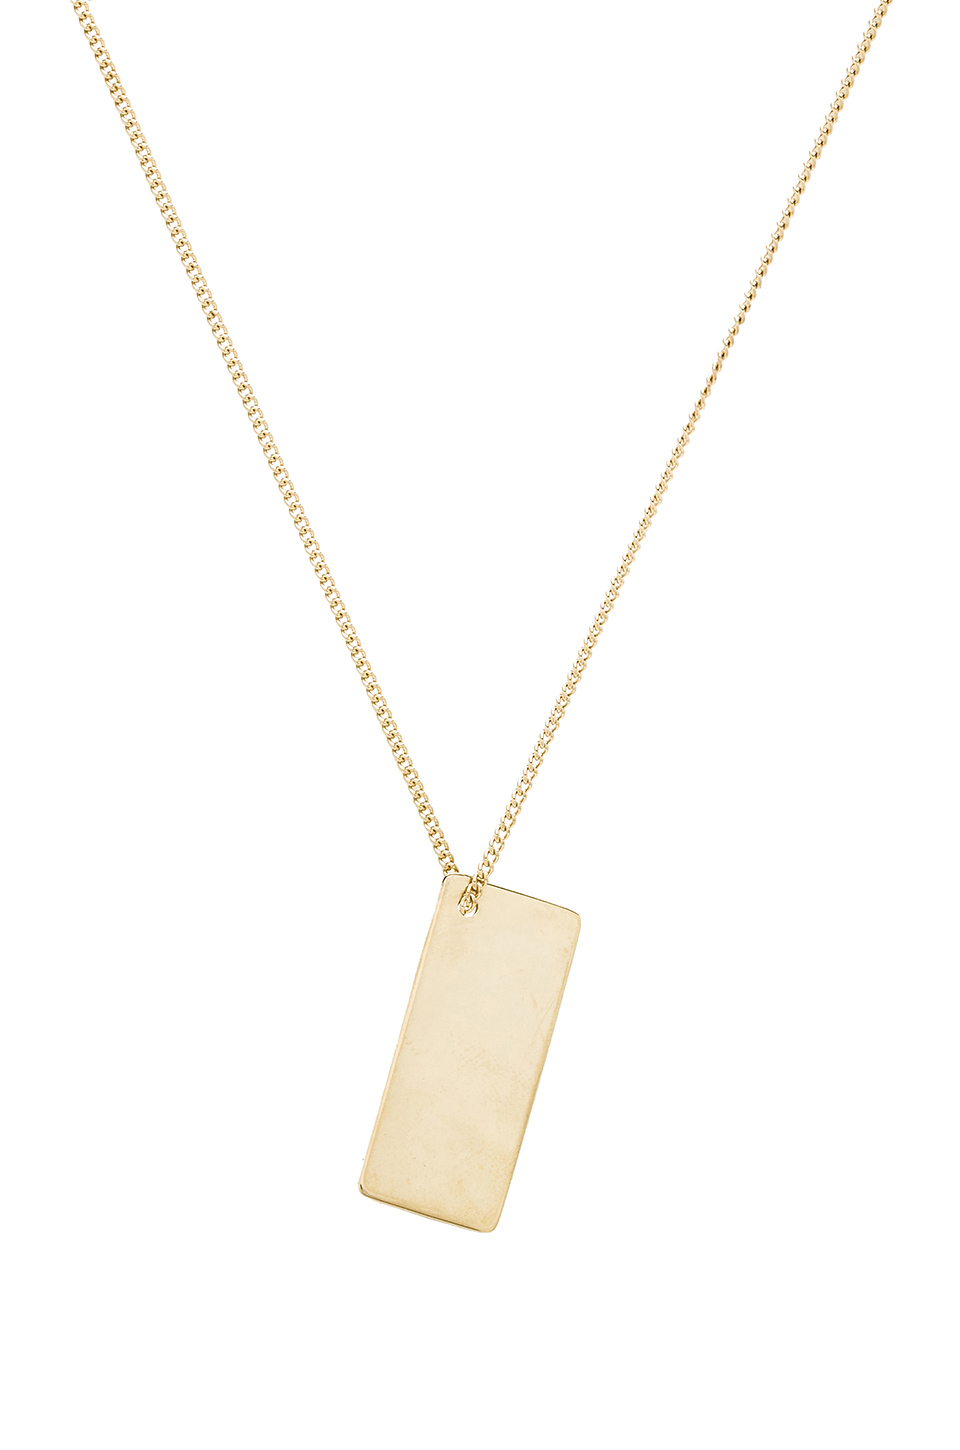 A.P.C. Lord Necklace in Or Clair